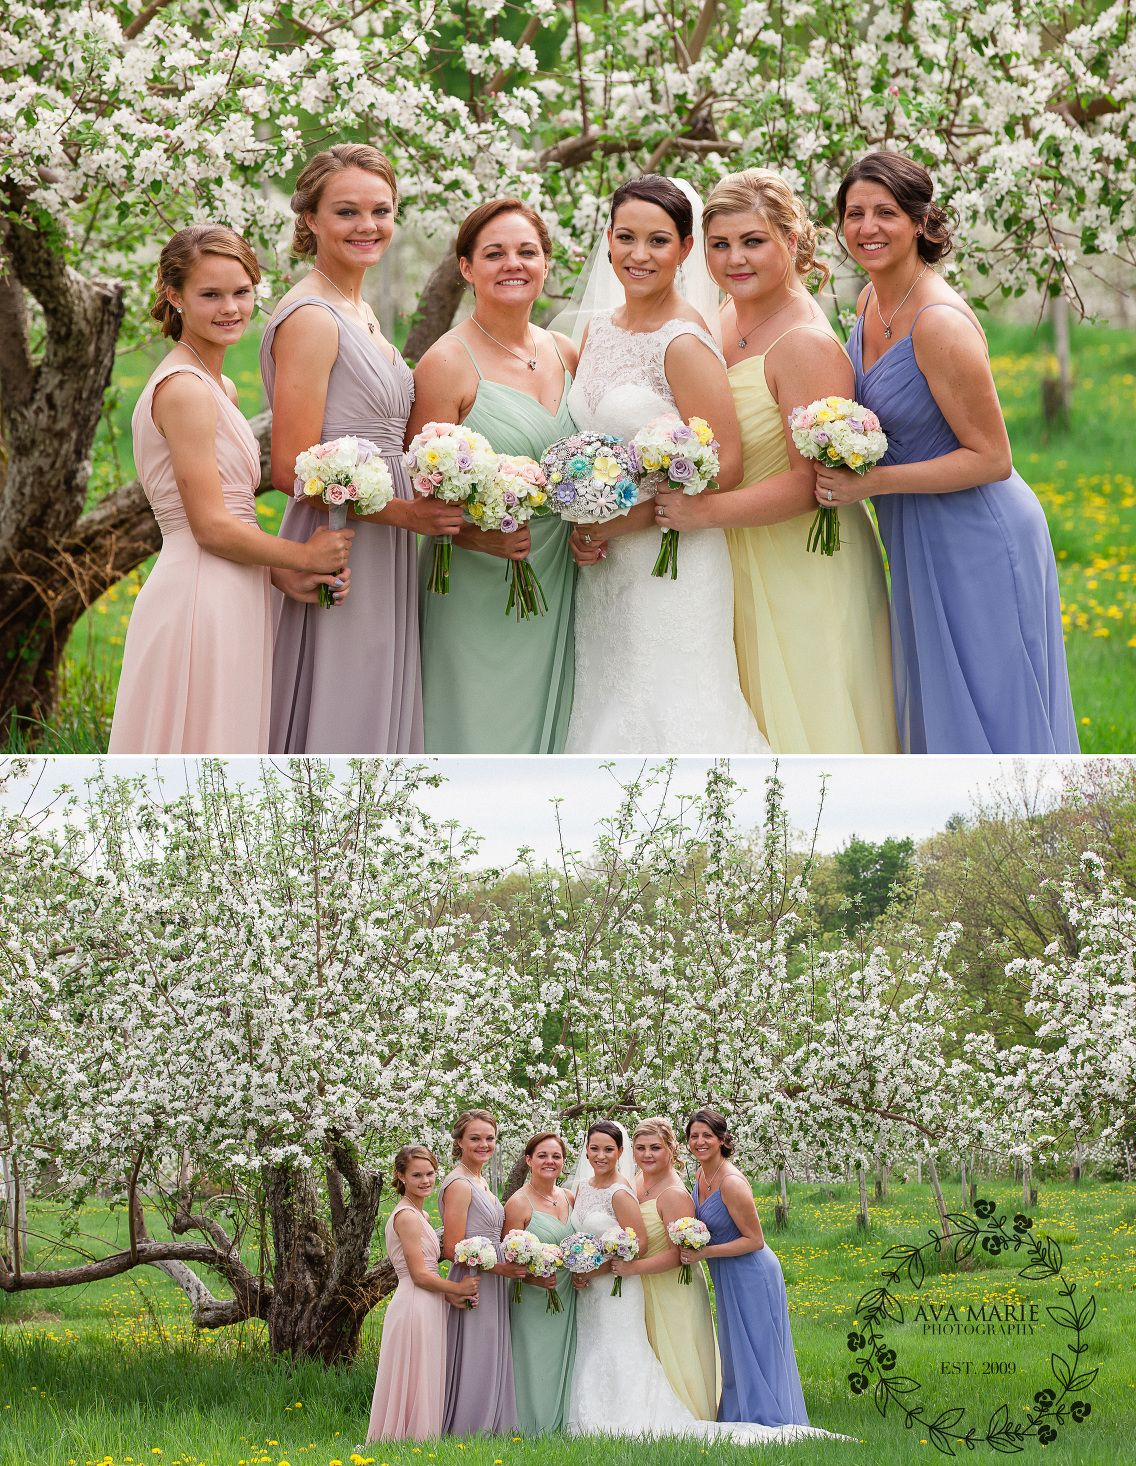 Mismatched bridesmaids in pastel dresses nh wedding photographer mismatched bridesmaids in pastel dresses nh wedding photographer ava marie photography ombrellifo Choice Image